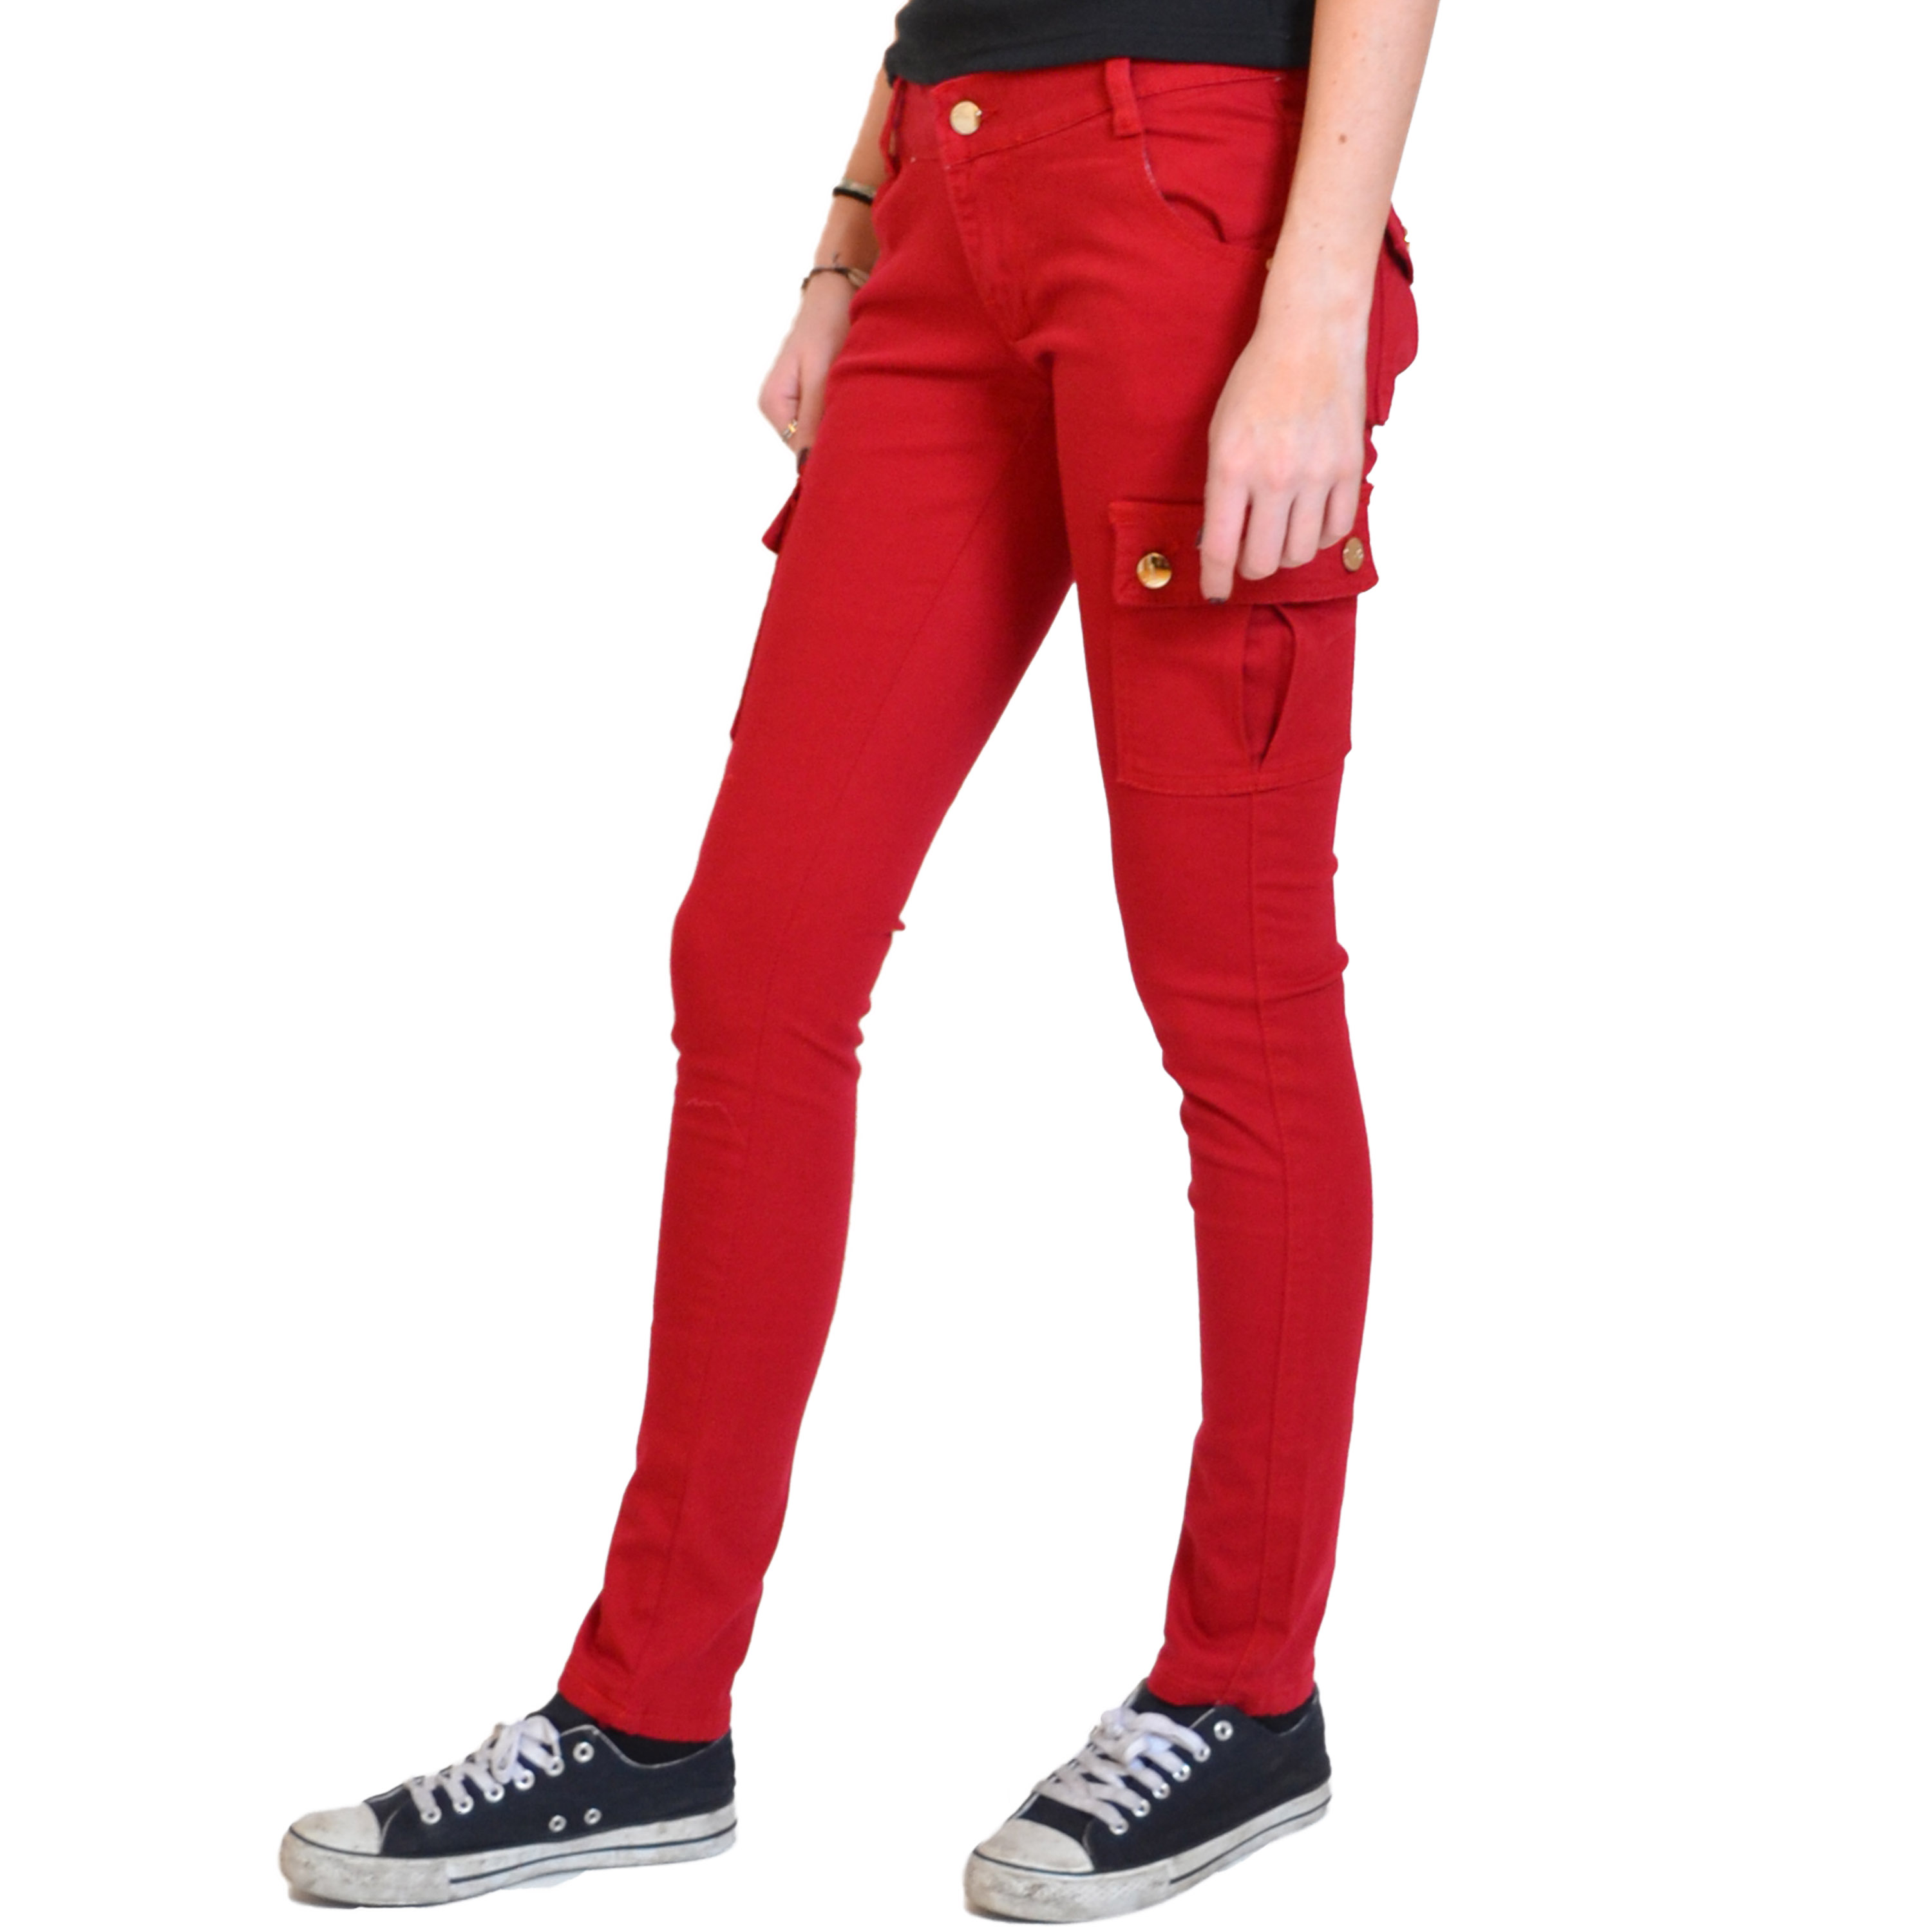 Excellent  Womens Red Slim Skinny Fitted Combat Jeans Trousers Cargo Pants  EBay